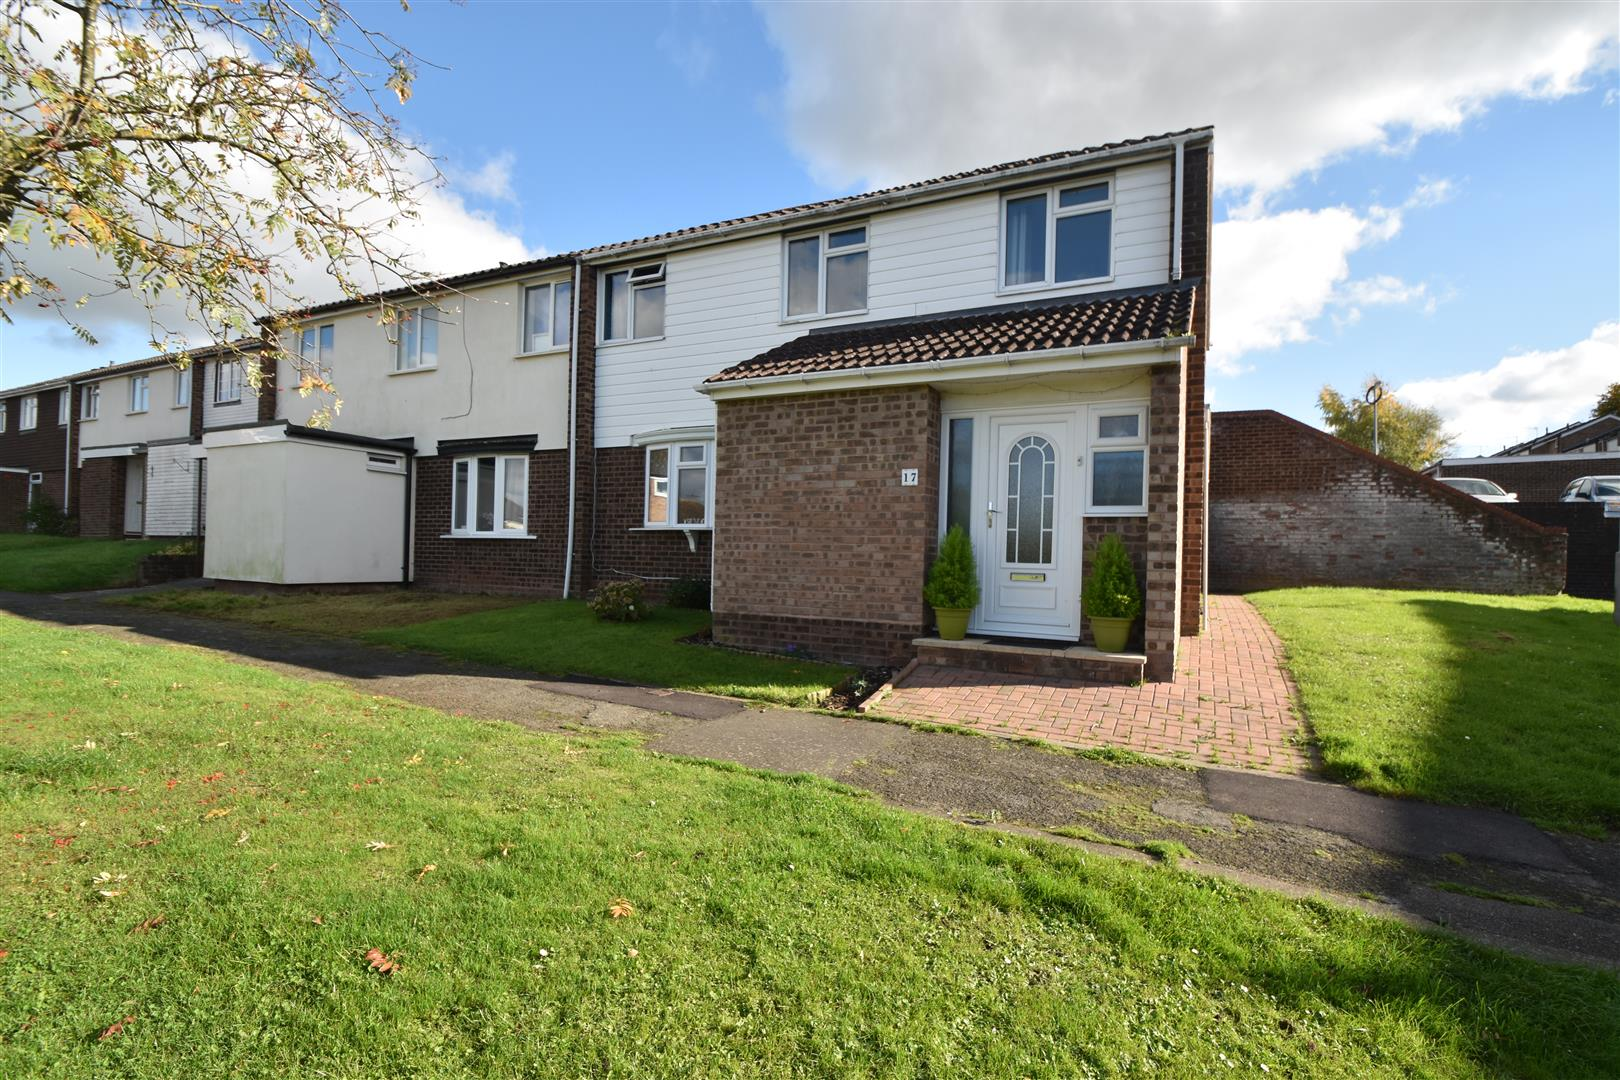 3 Bedrooms End Of Terrace House for sale in The Rye Lea, Droitwich Spa